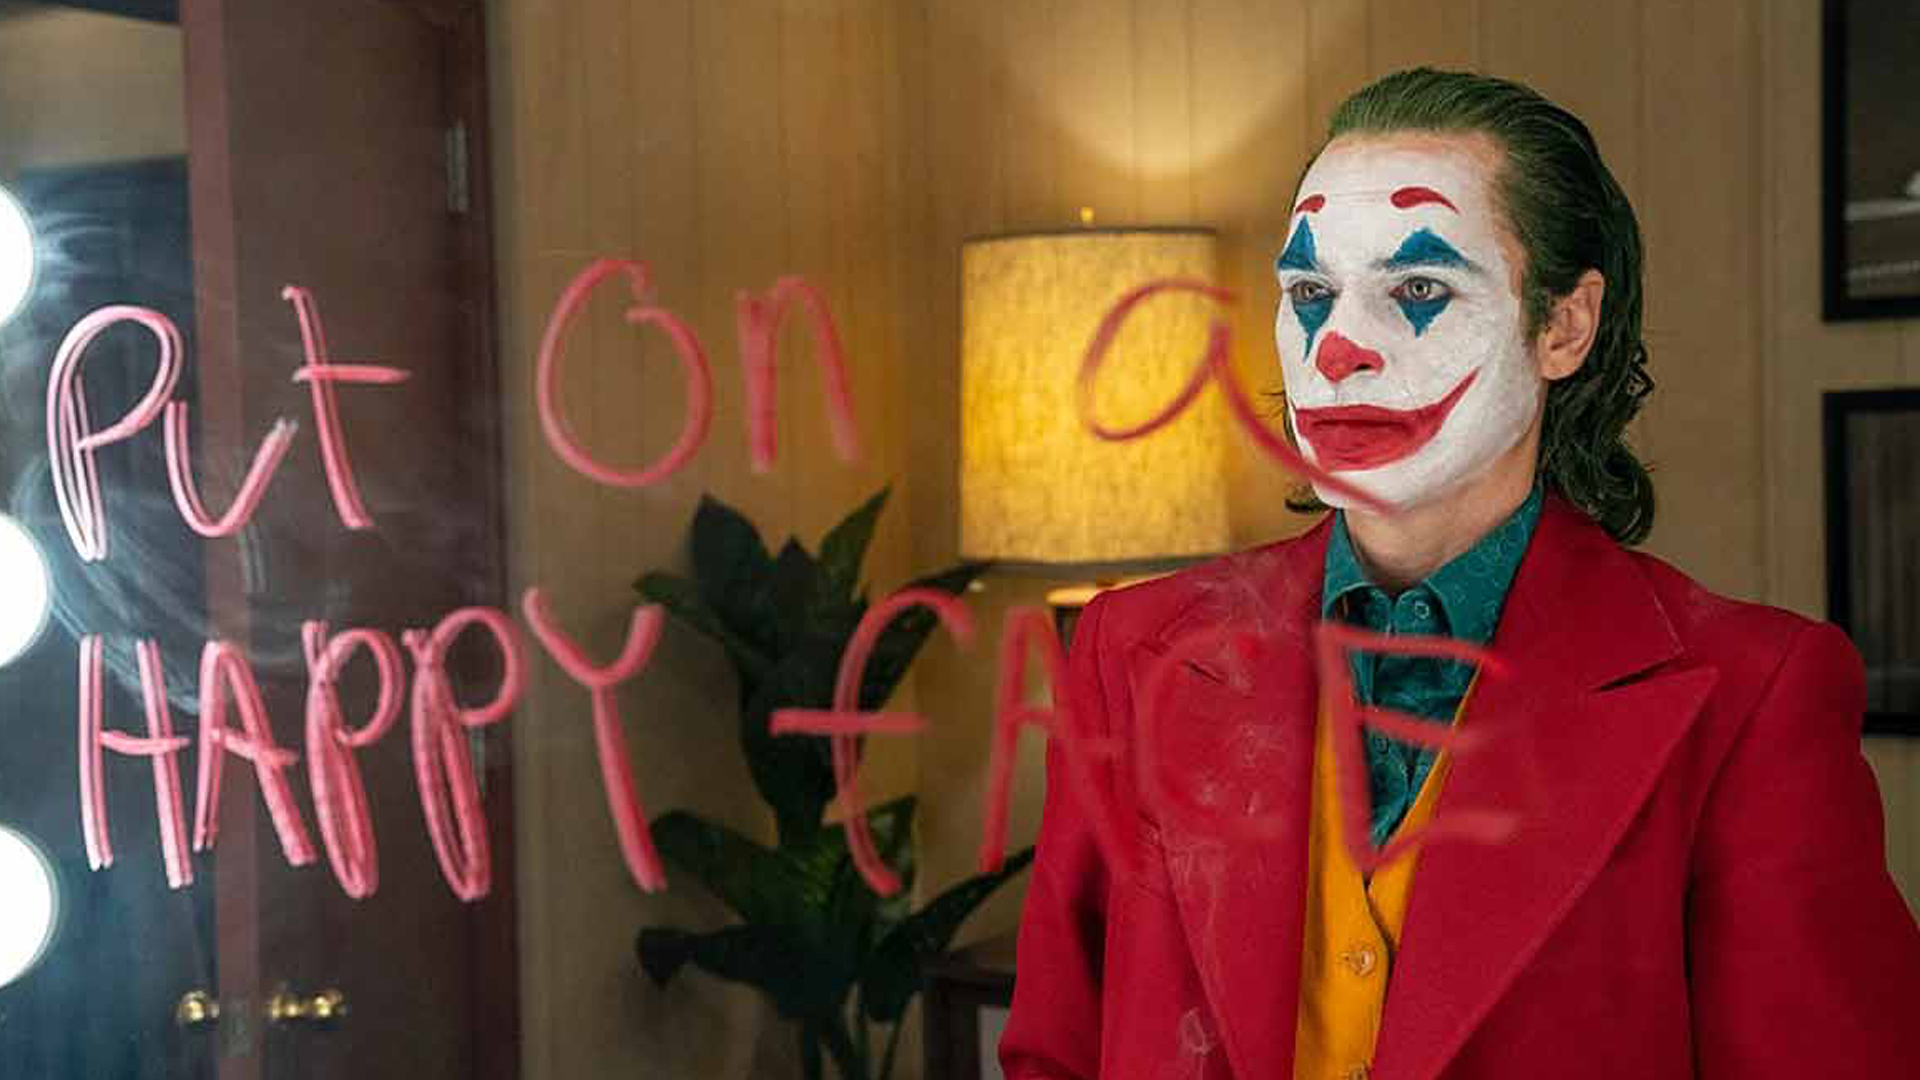 Joker: Was The Movie Real or Fake? Explained! - ONE SHOT screen capture